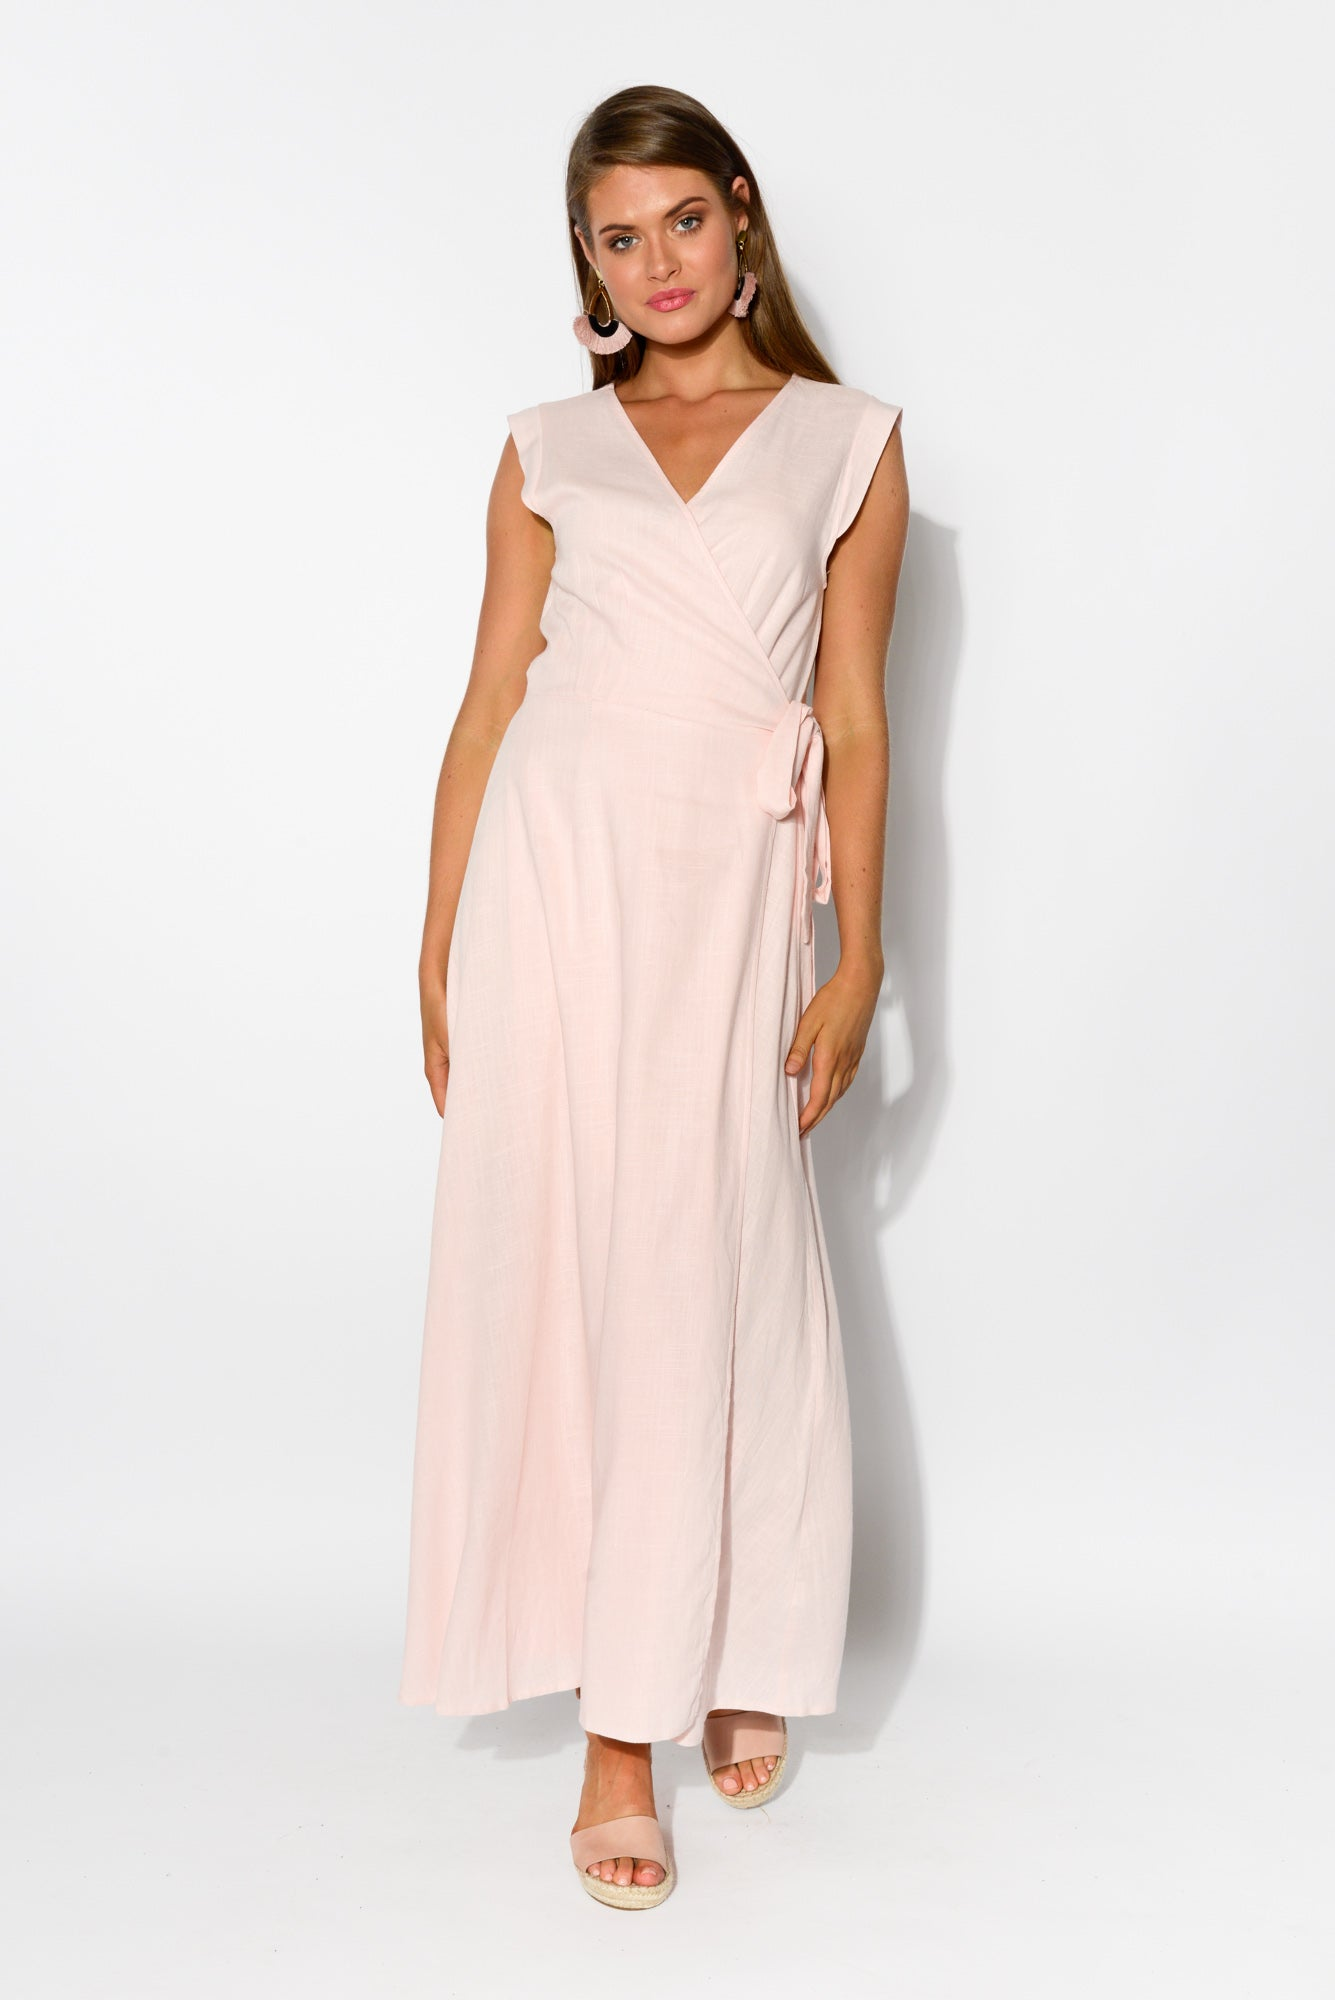 Poppy Pink Linen Cotton Wrap Dress